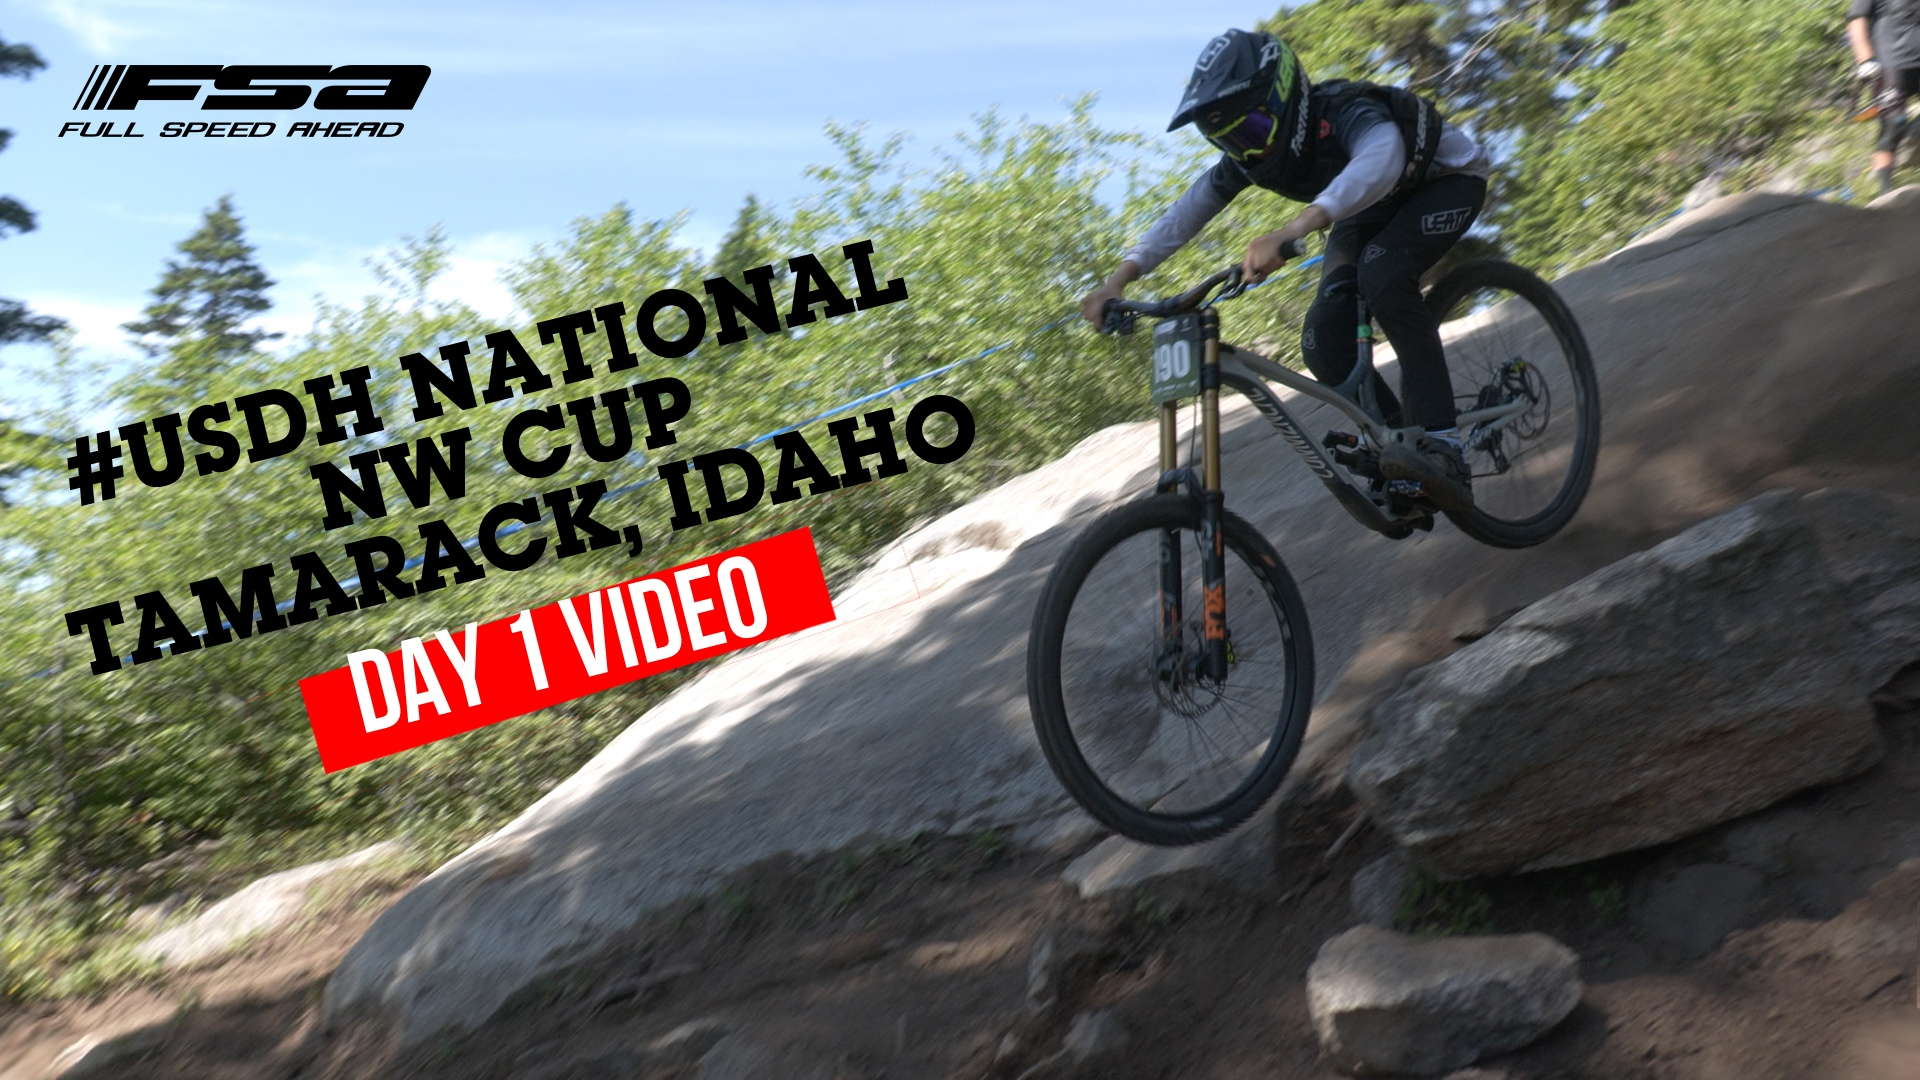 #USDH National / NW Cup Tamarack Day 1 Video